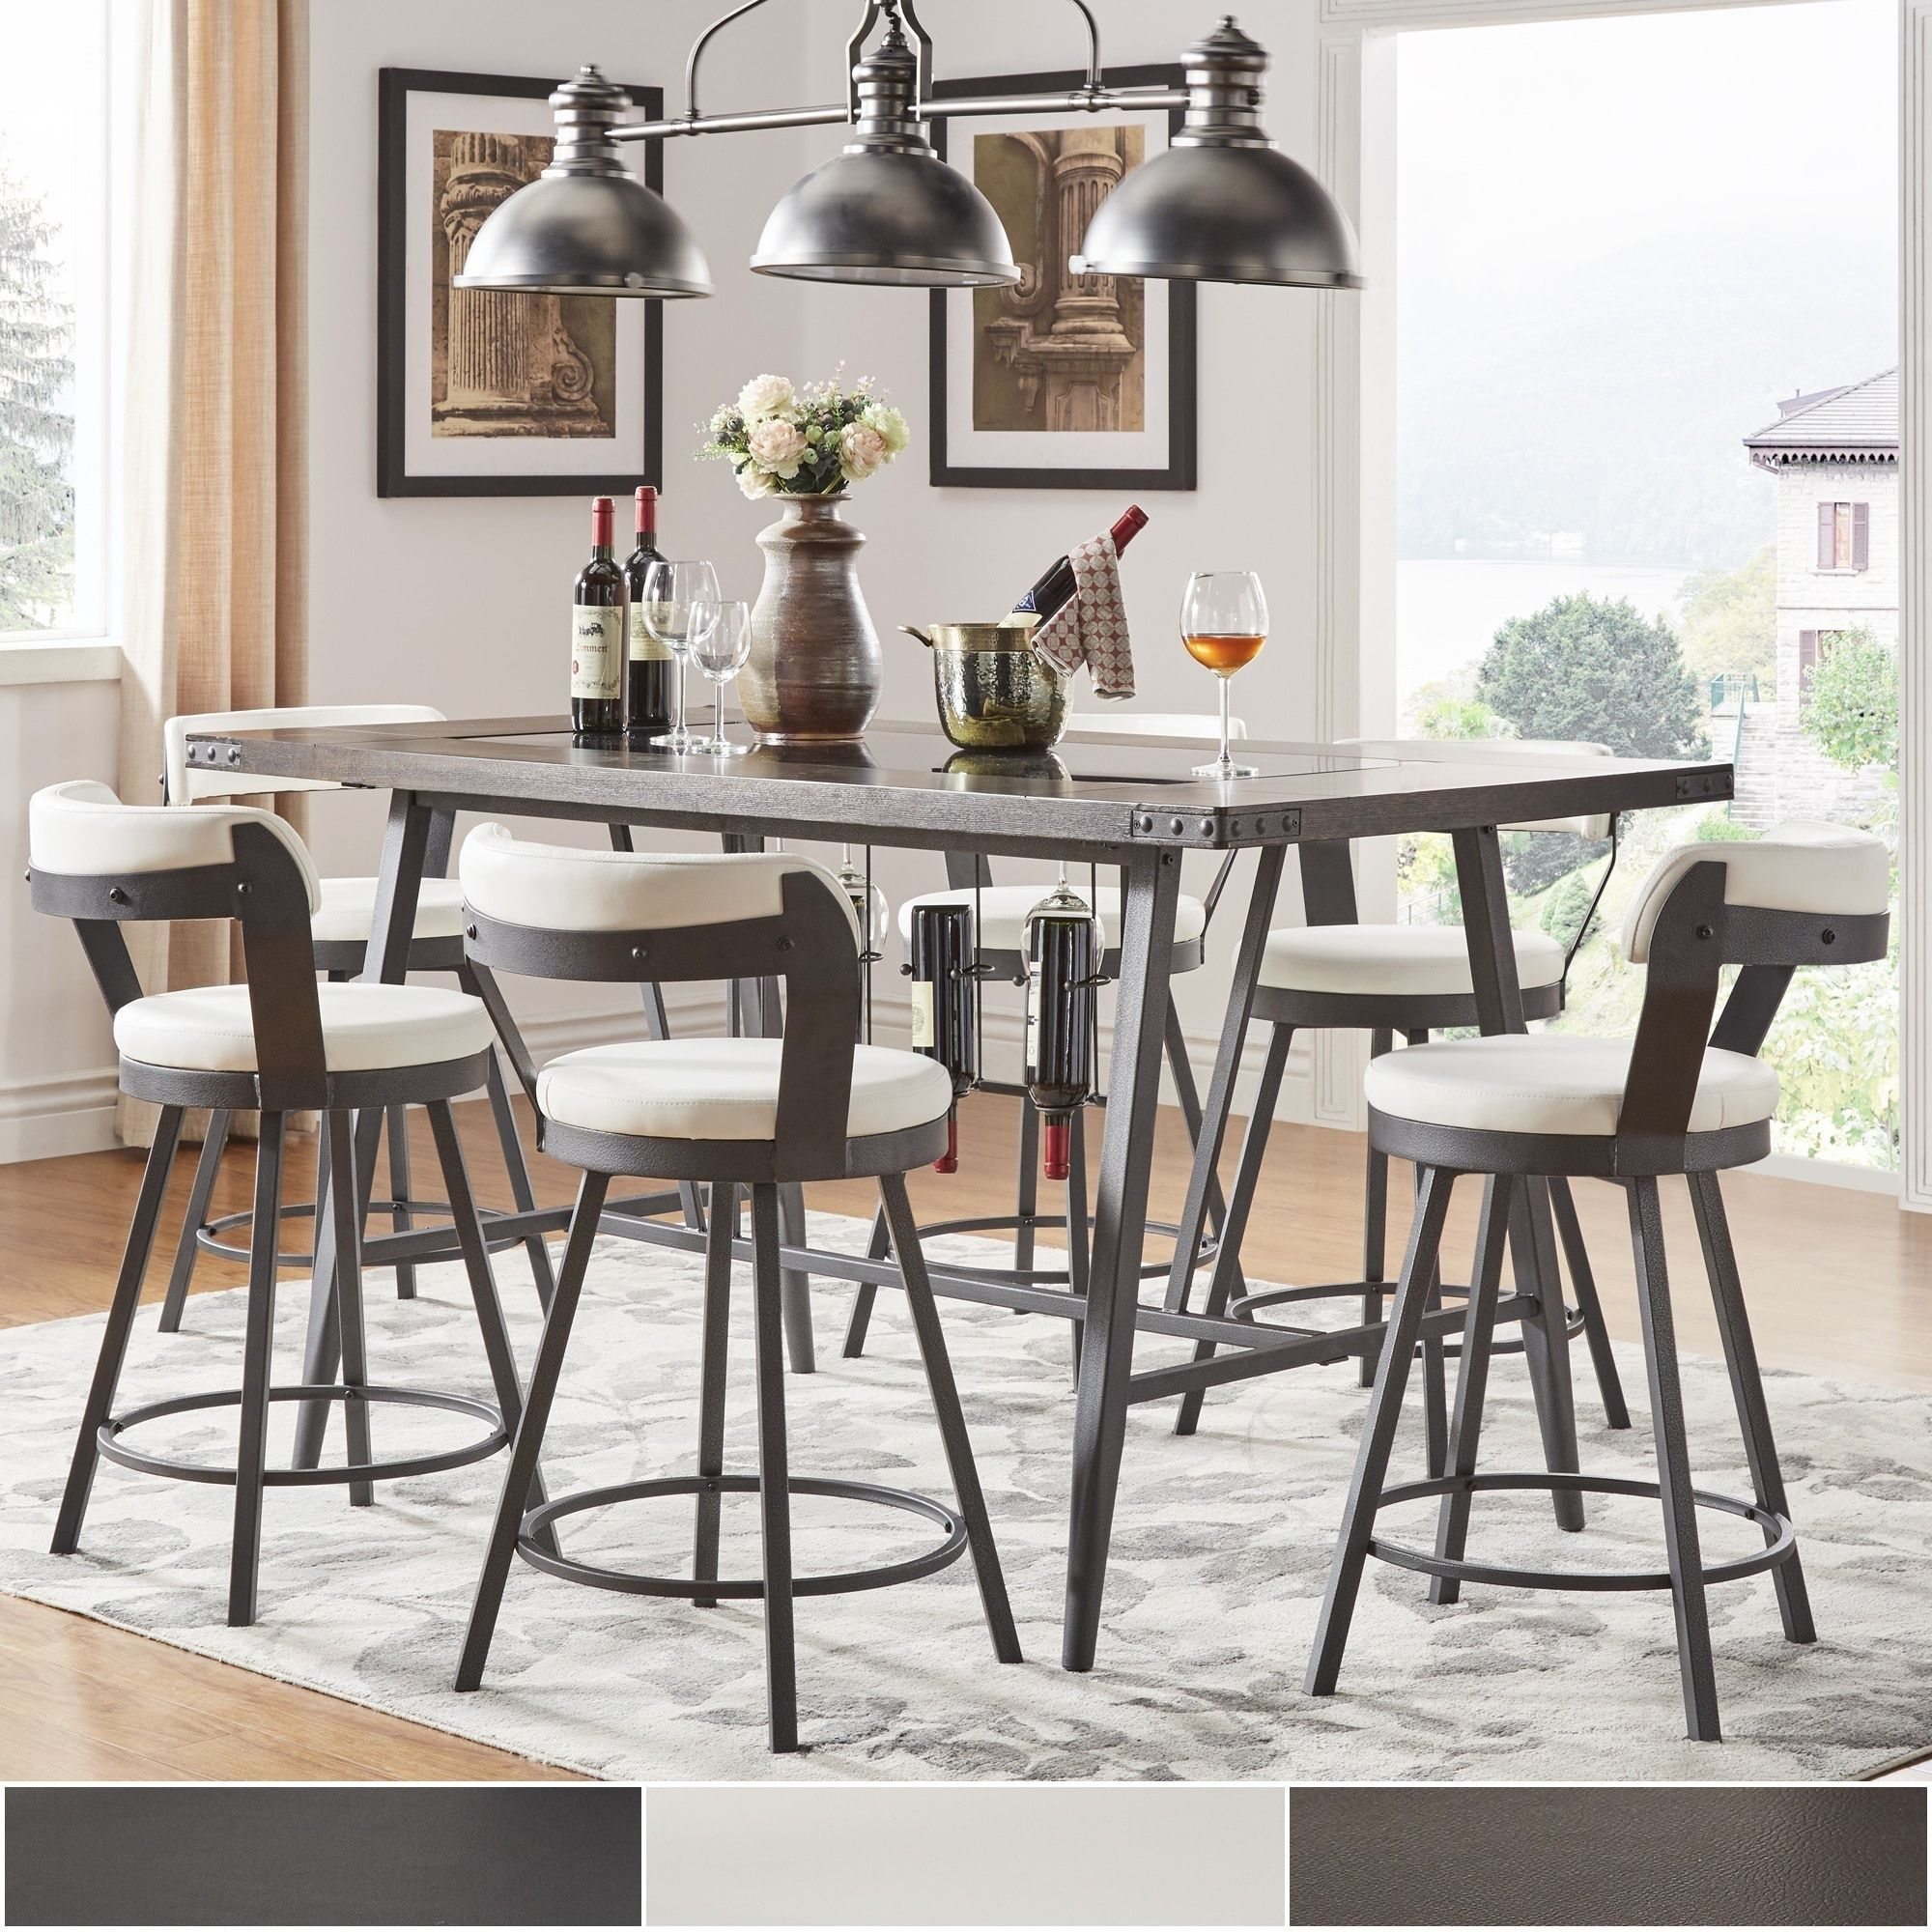 Harley Counter Height Dining Set with Wine Rack by iNSPIRE Q Modern  (5-Piece Set - Black), Size 5-Piece Sets